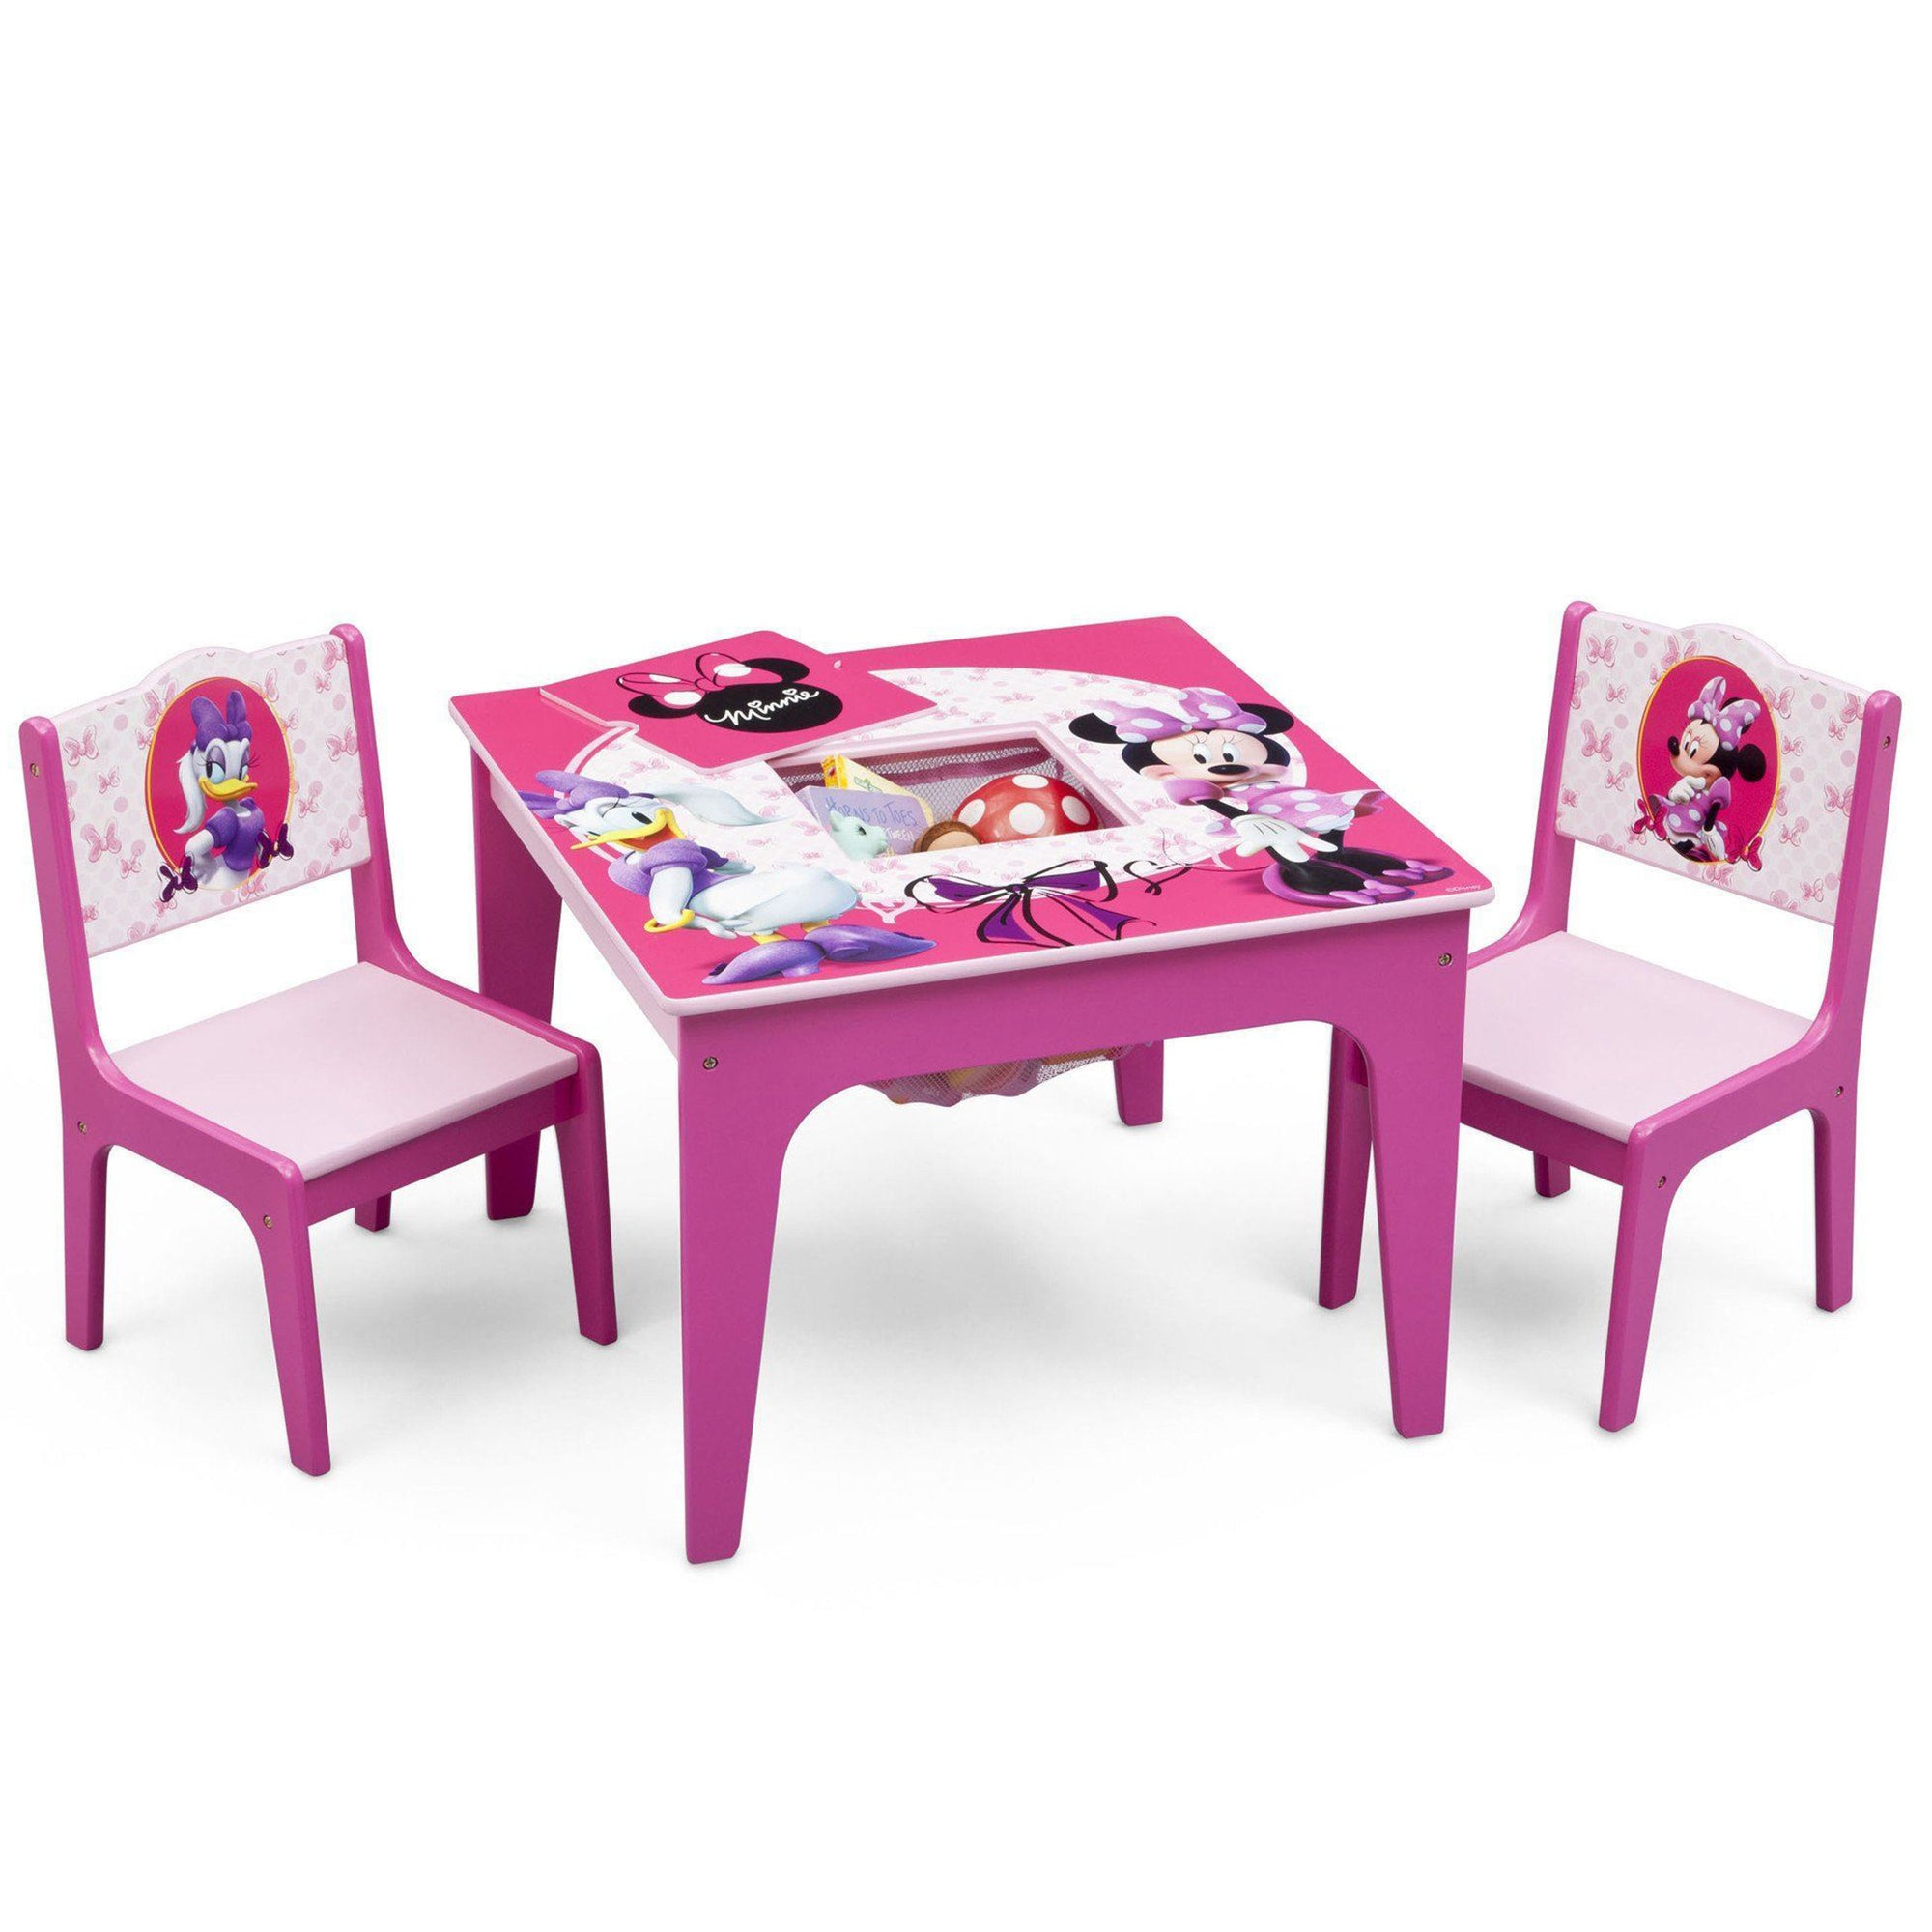 Minnie Mouse Deluxe Table & Chair Set with Storage